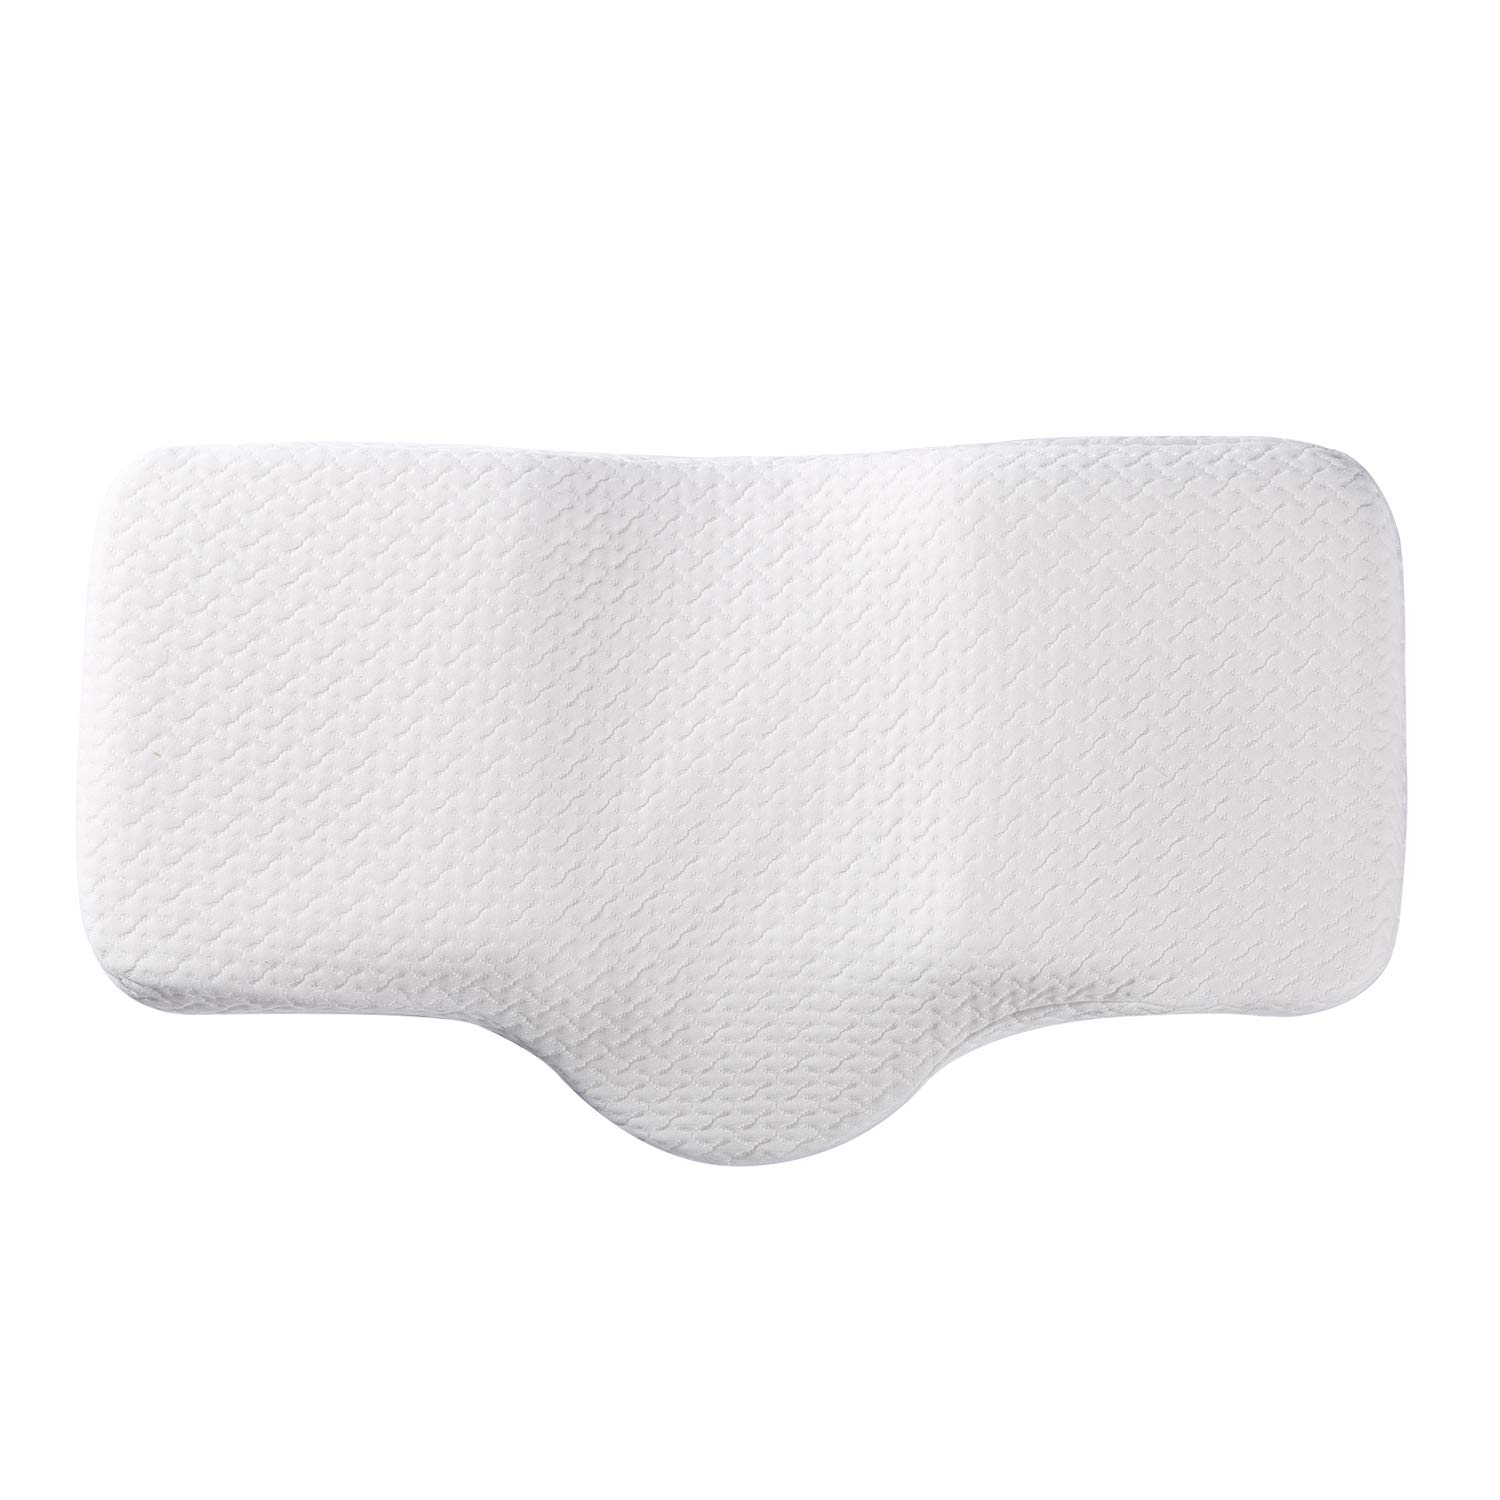 Soft Anti Snore Pillow,Sleep Support Pillow for Back/Side Sleepers,Wellness Memory Foam Cervical Side Sleeper Solution by Coolux (Image #5)